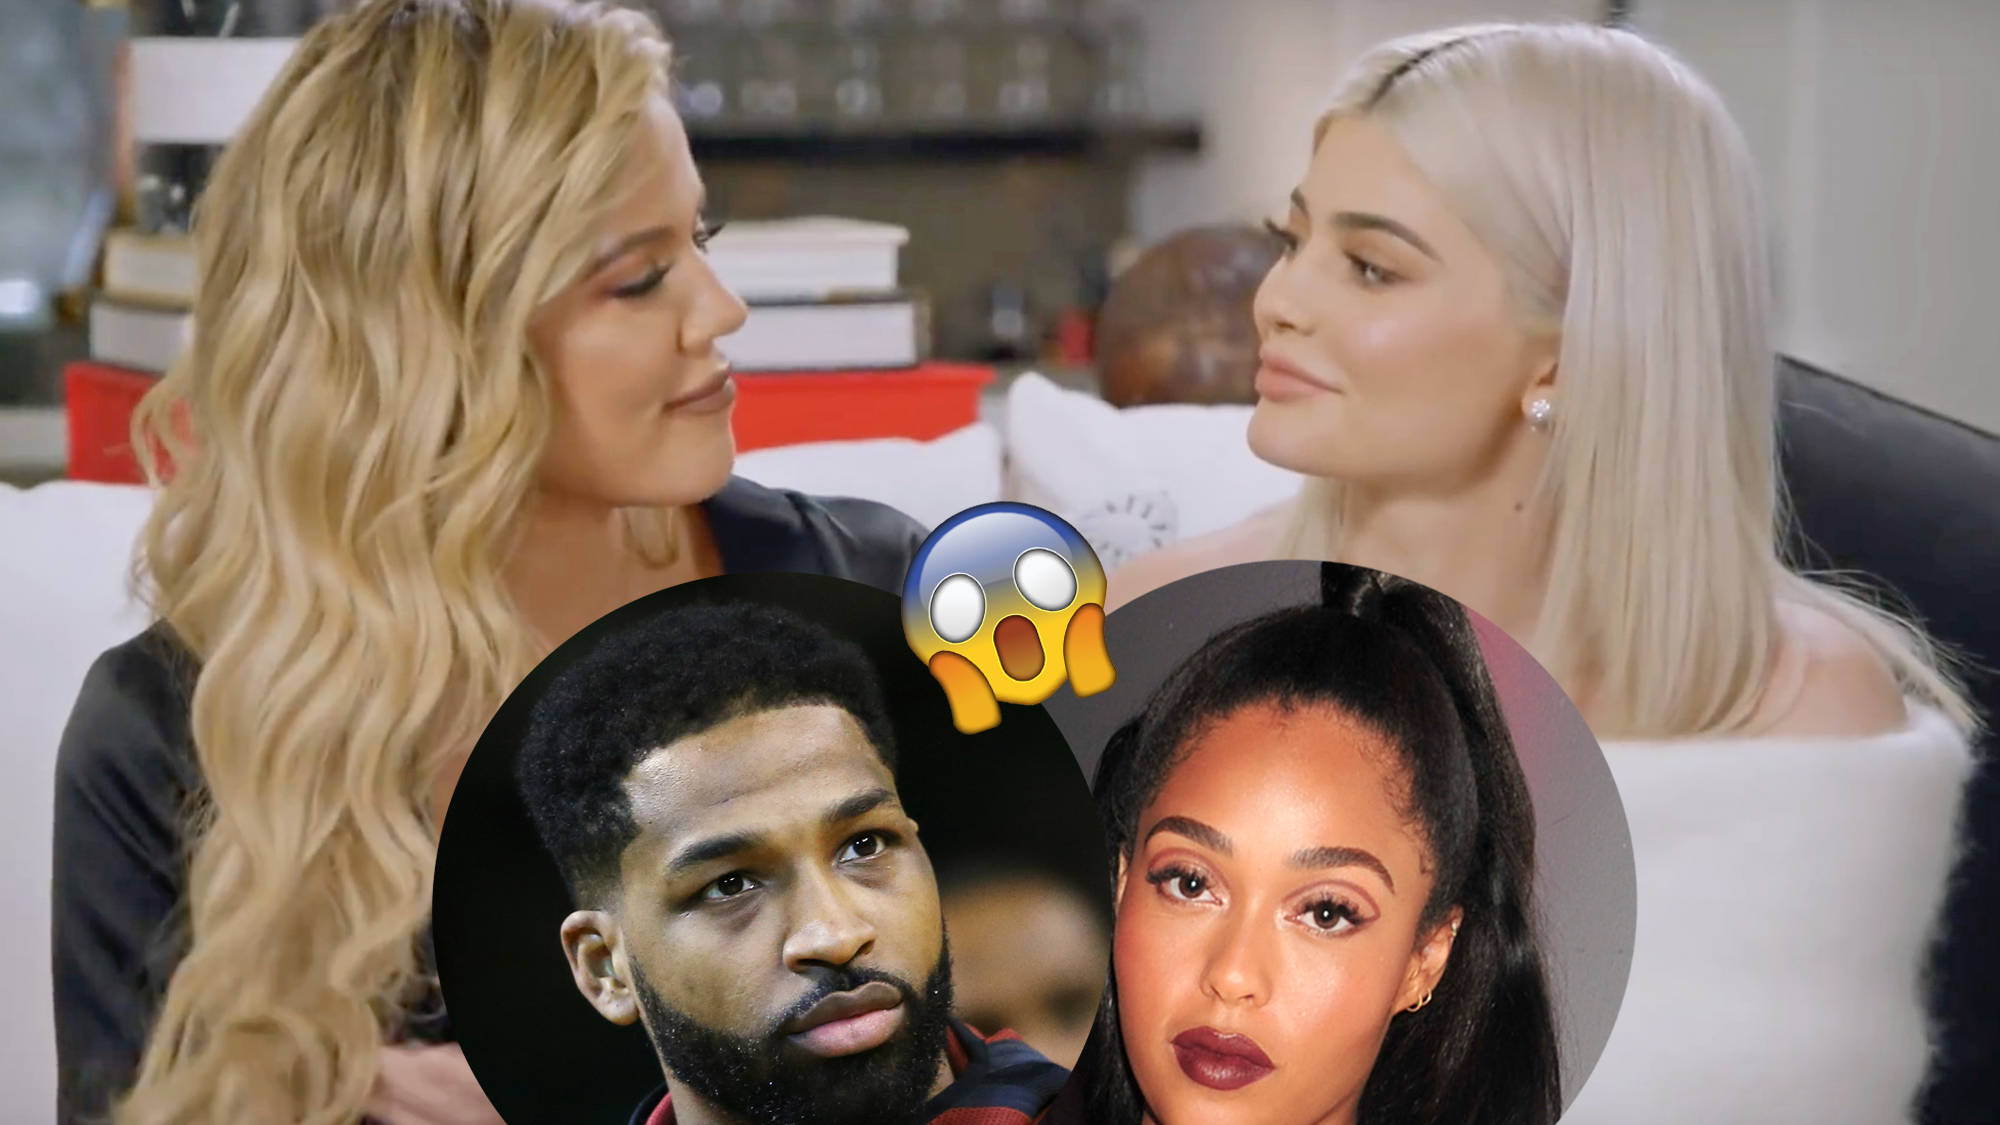 Jordyn Woods Just Addressed The 'Cheating' Drama For First Time